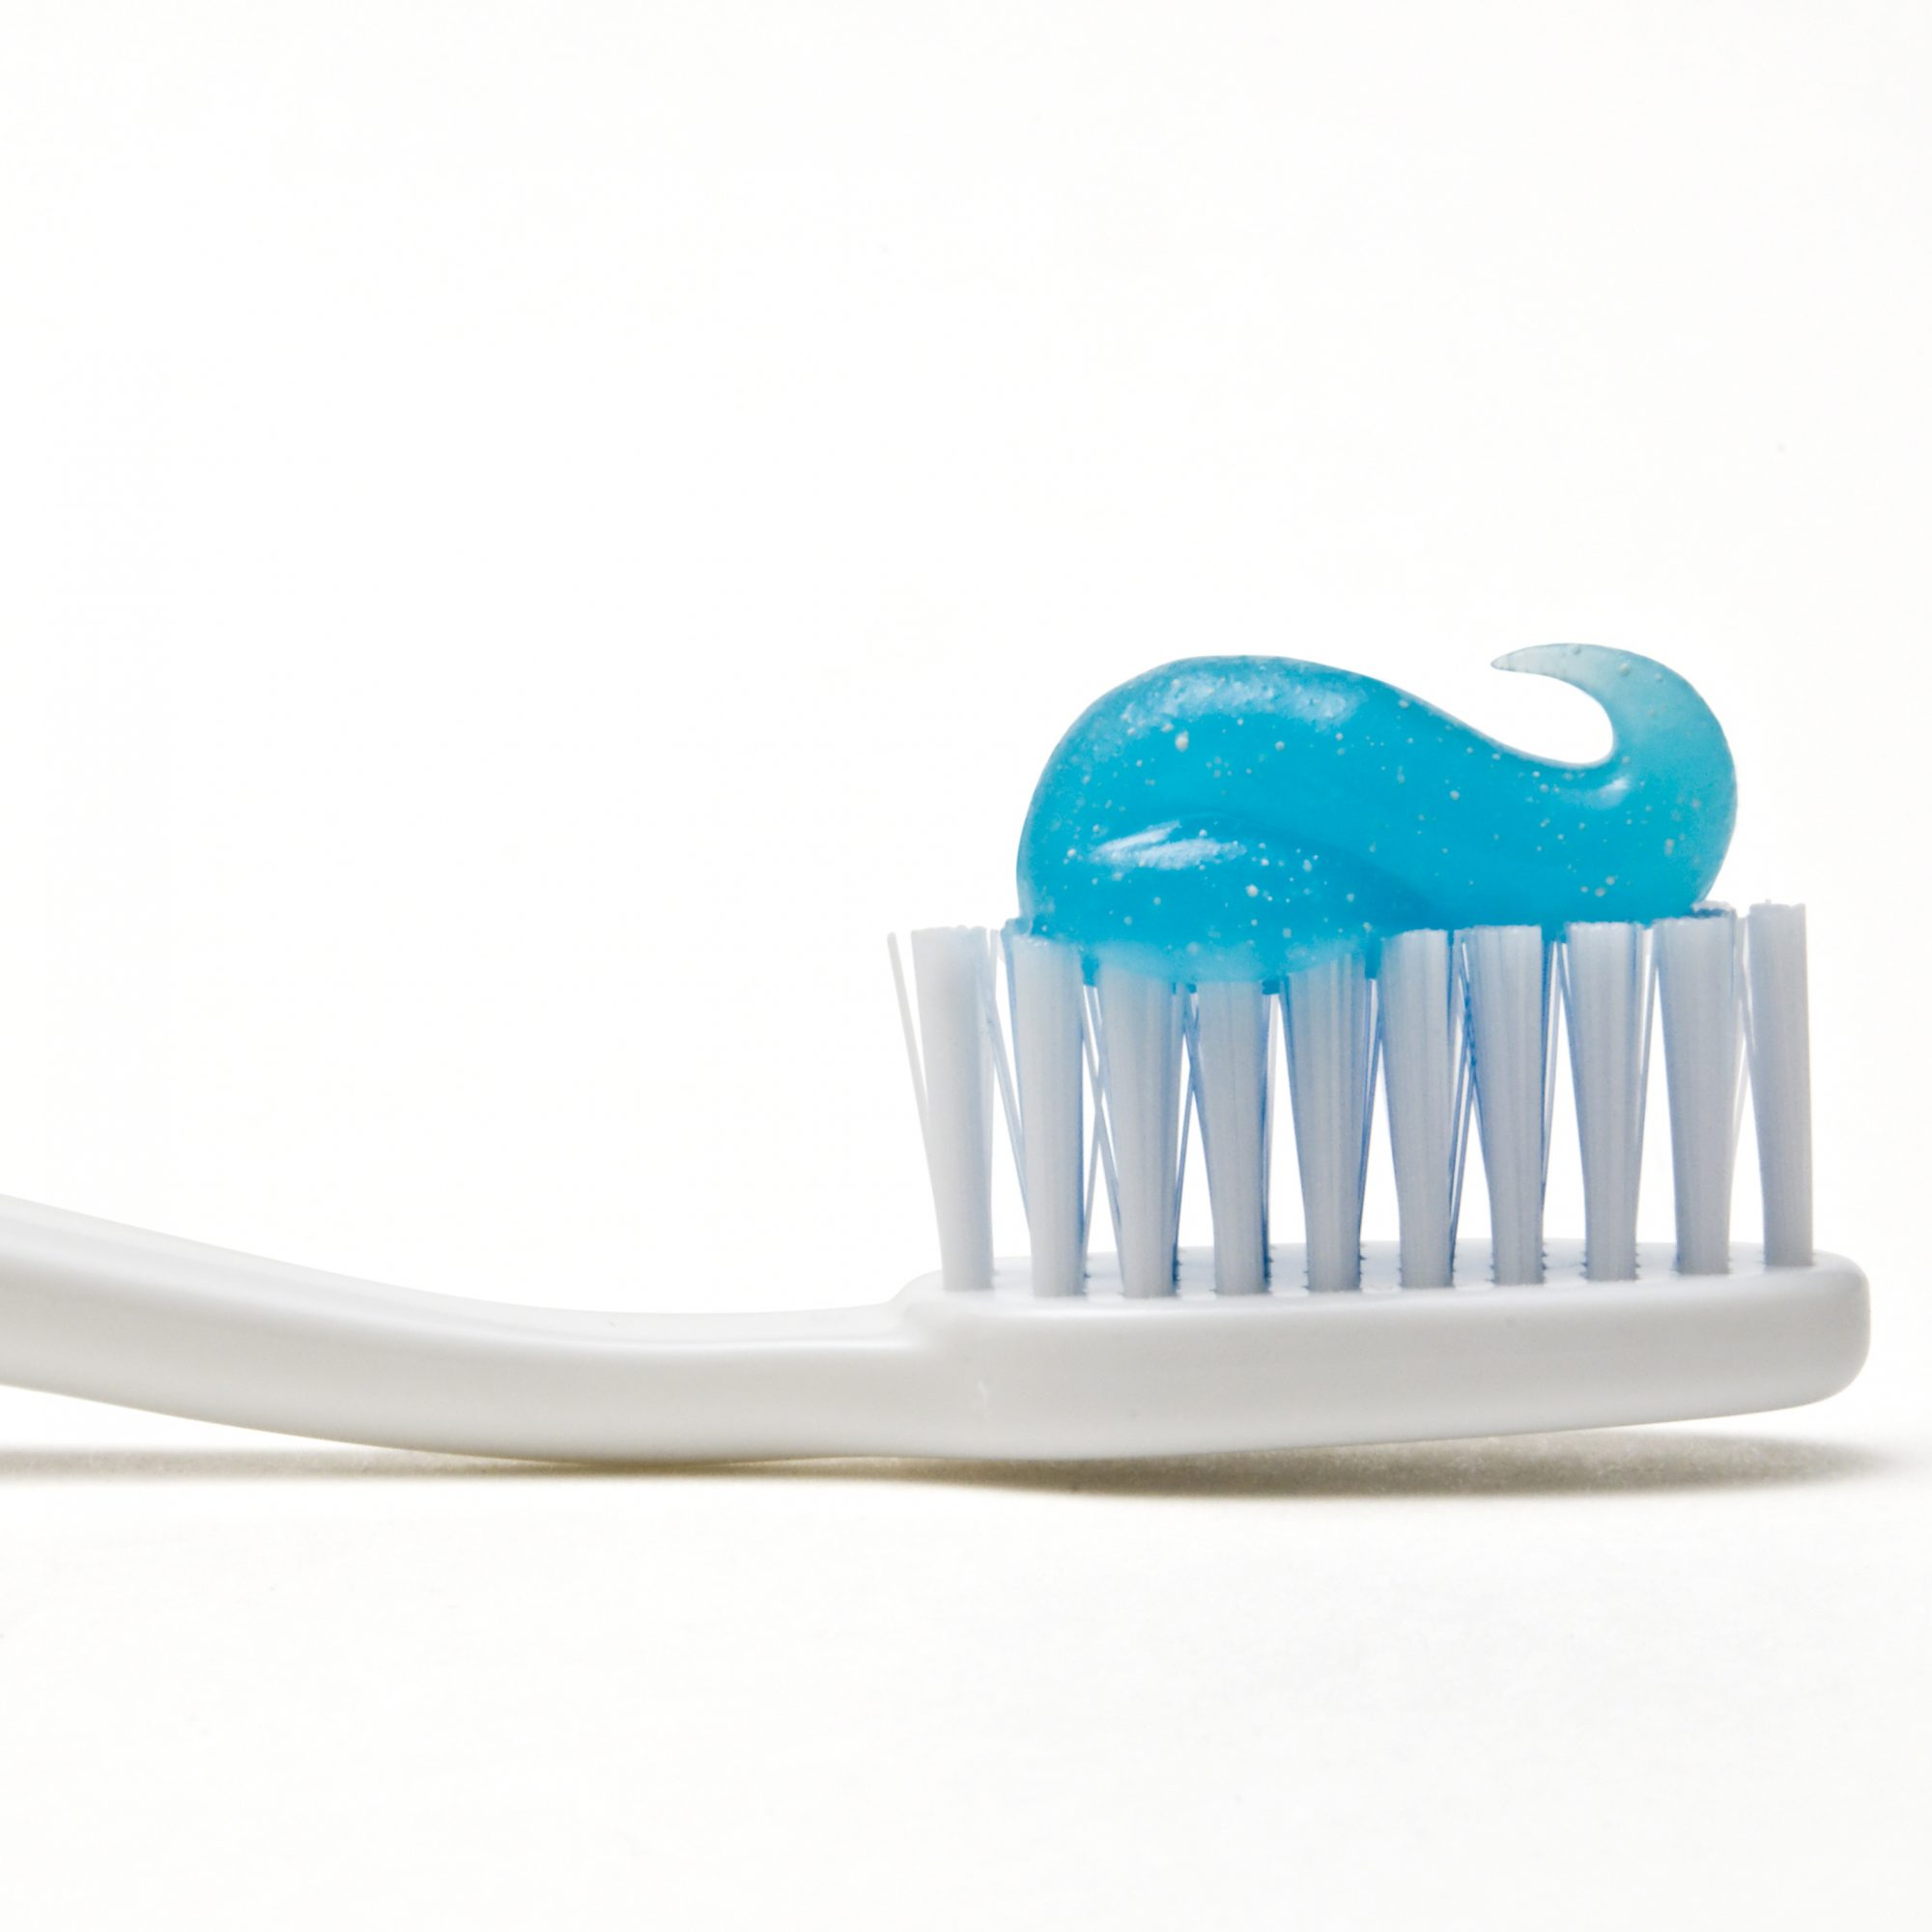 tooth-paste-on-toothbrush-fwx